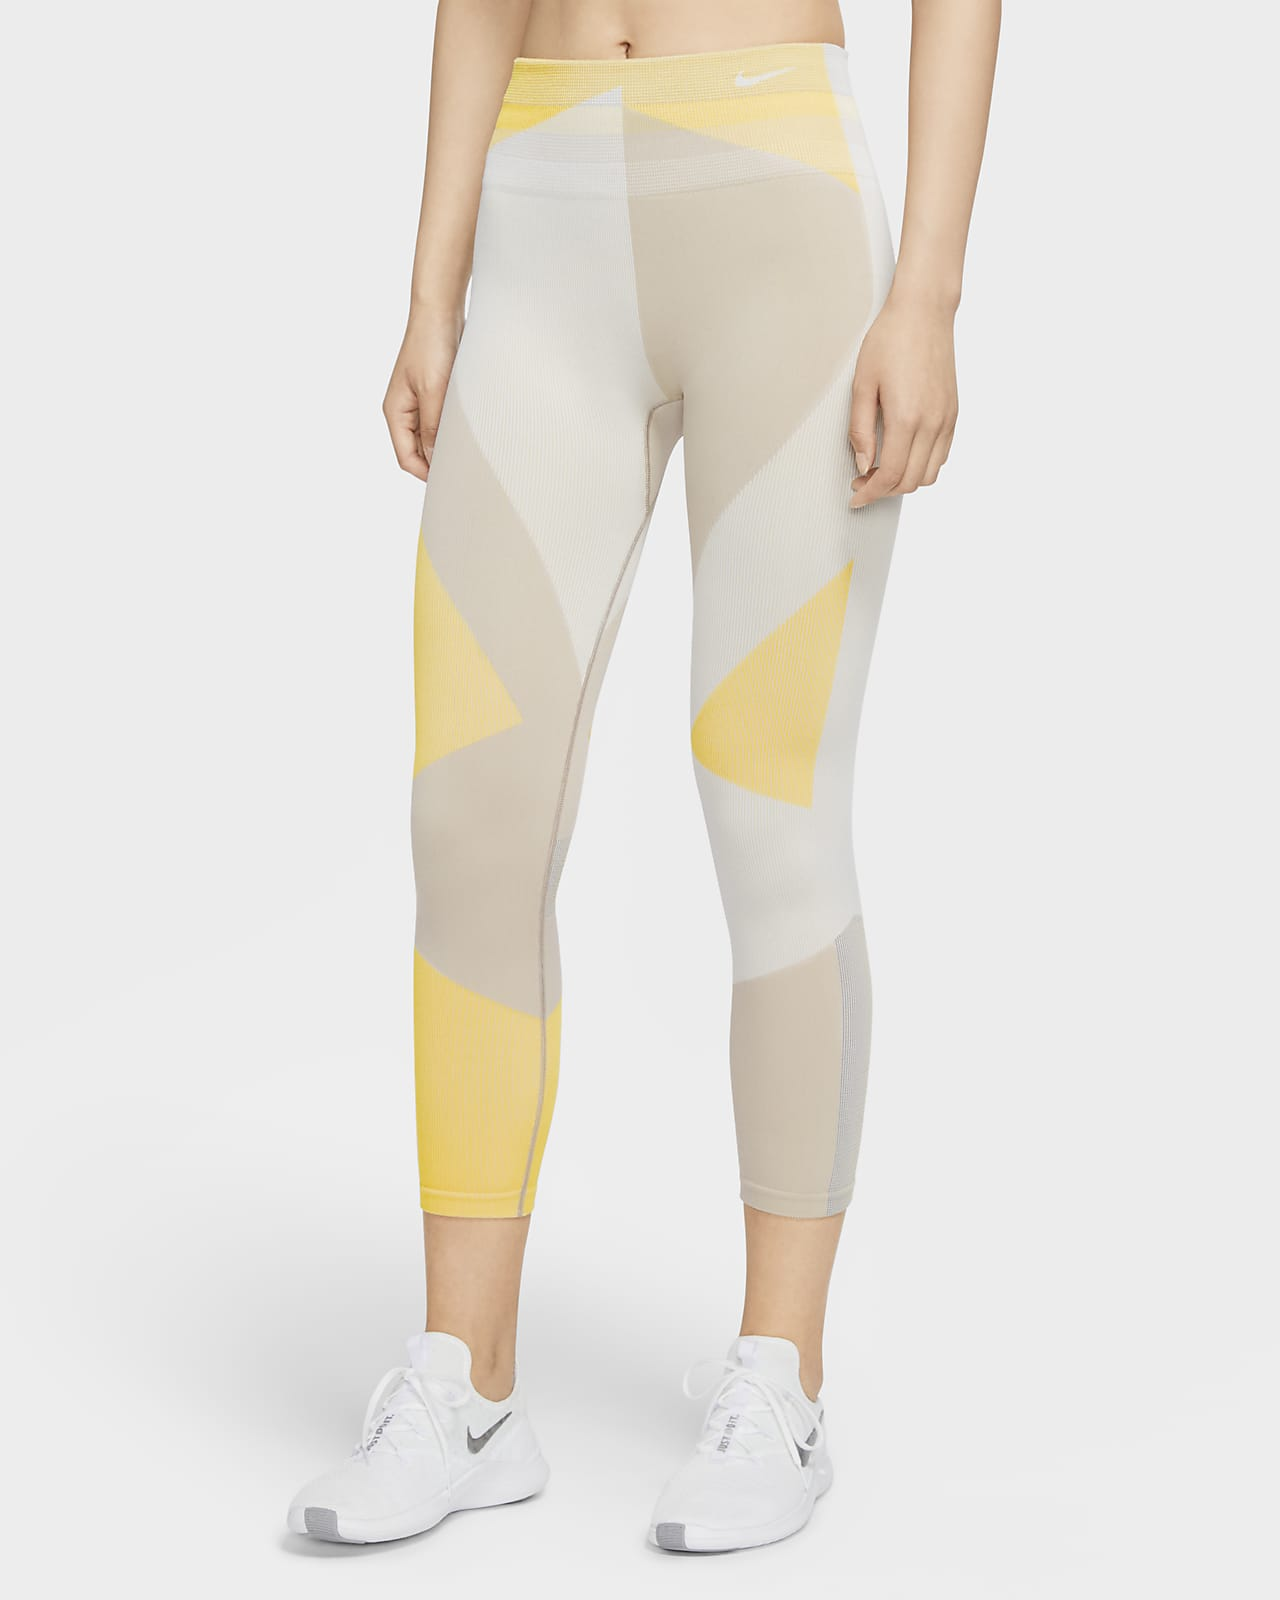 Nike Sculpt Icon Clash Women's High-Waisted 7/8 Training Leggings